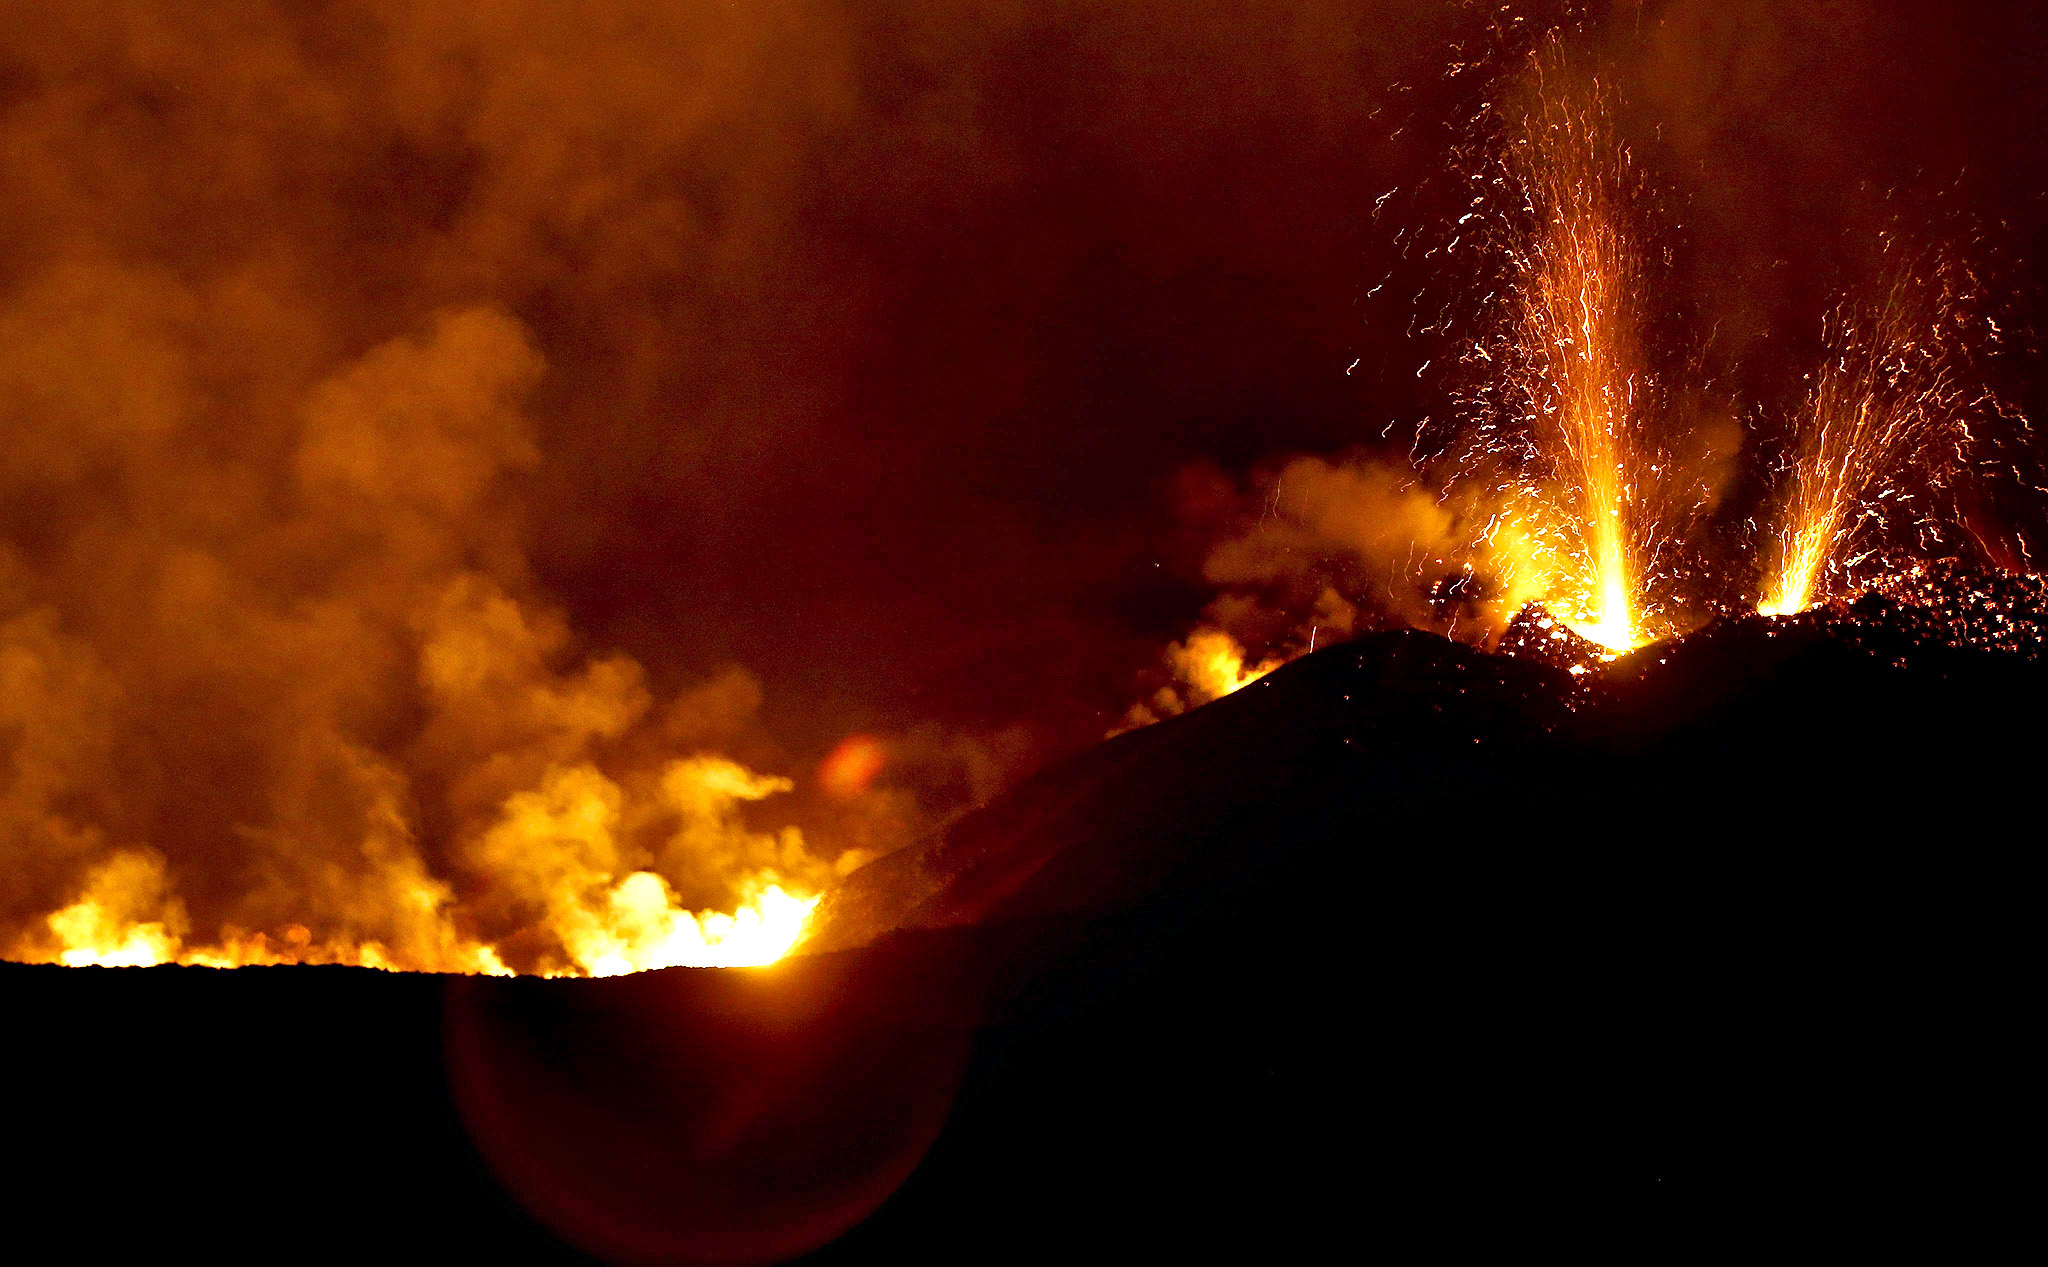 Lava and clouds of smoke and gases being emitted from a volcano on the island of Fogo, Cha das Caldeiras, Cape Verde. After violent explosions recorded at dawn, the volcanic eruption that occurs since 23 November on the Cape Verdean island of Fogo calmed, allowing some inhabitants in the area to recover possession